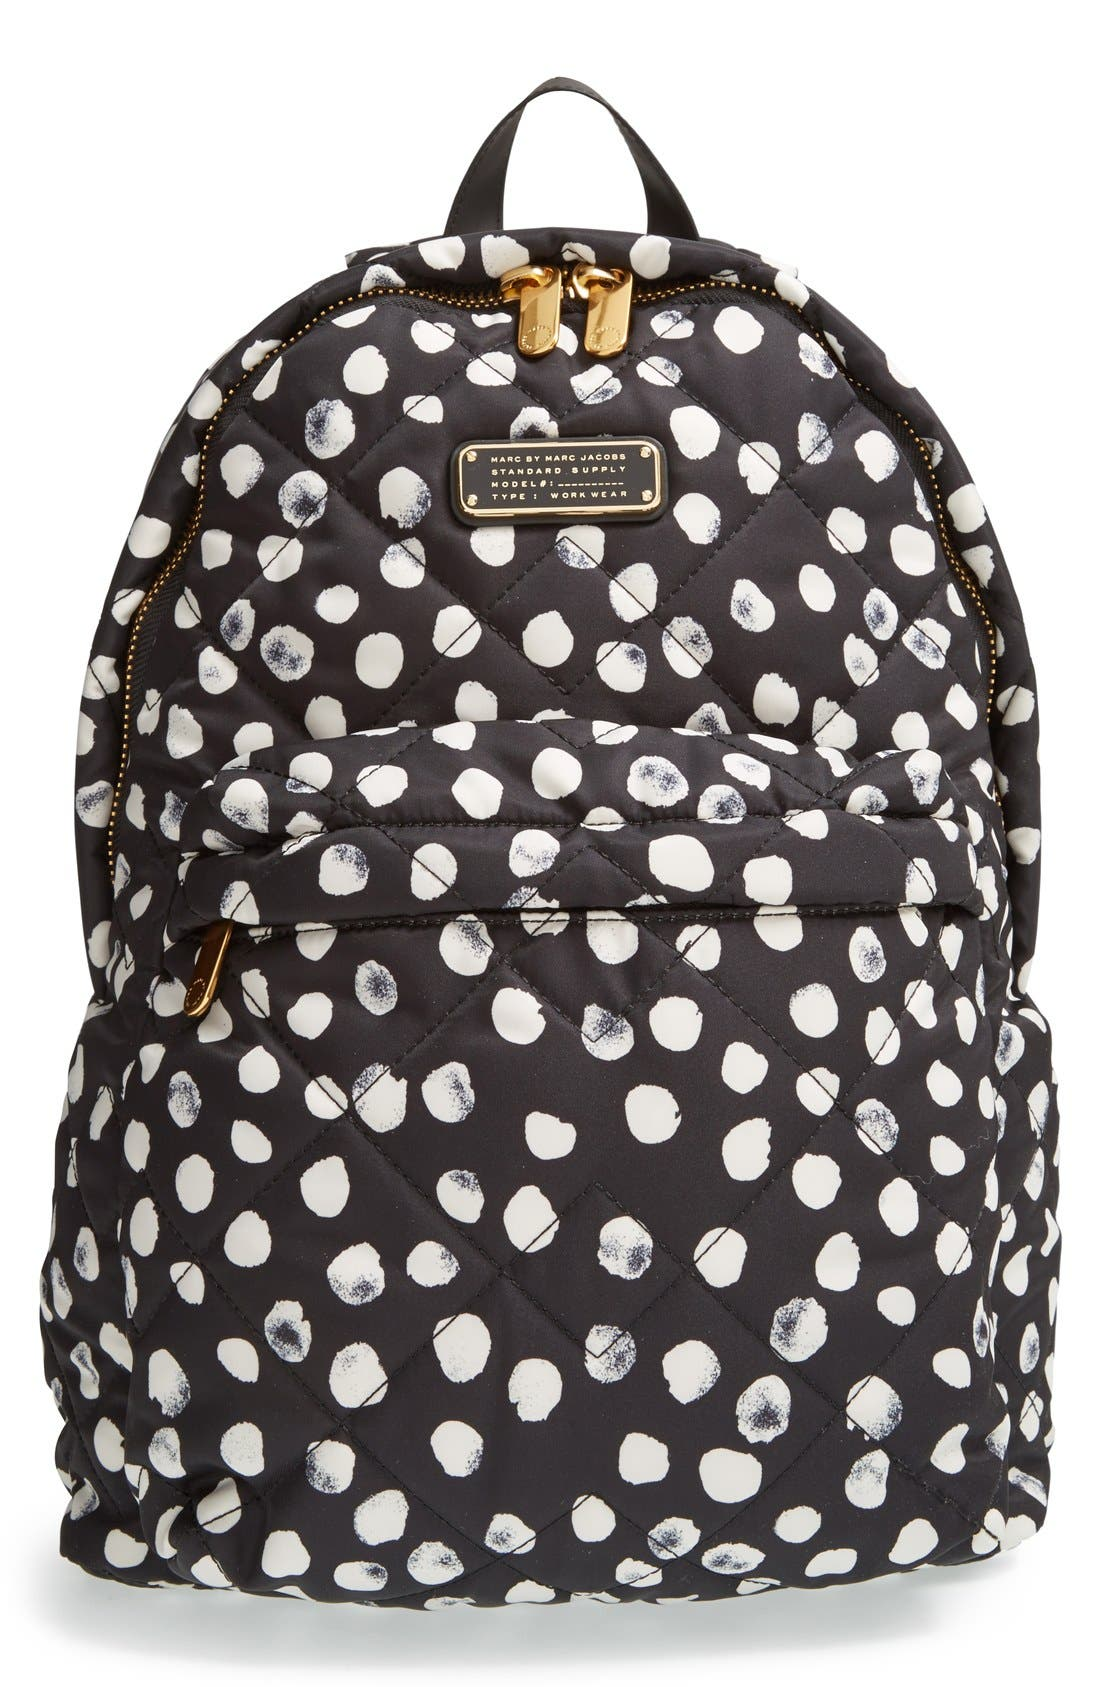 MARC JACOBS MARC BY MARC JACOBS 'Crosby' Quilted Backpack, Main, color, 001